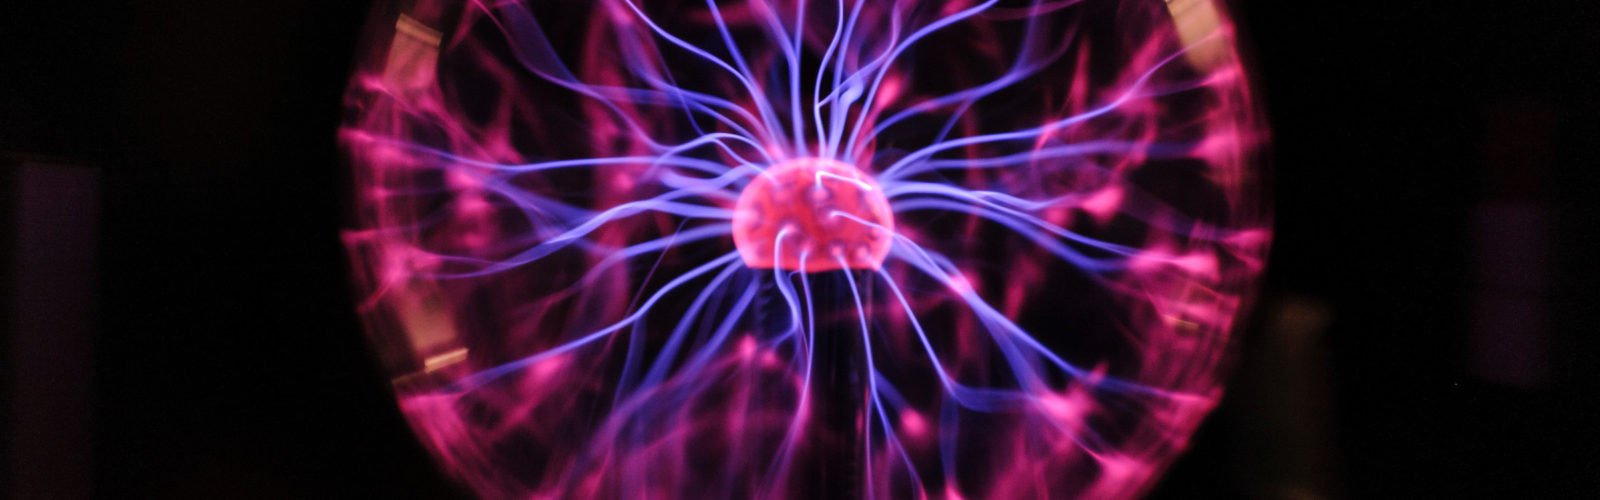 The conduction of electrons radiates from a Tesla coil within a plasma ball during a Wonders of Physics show